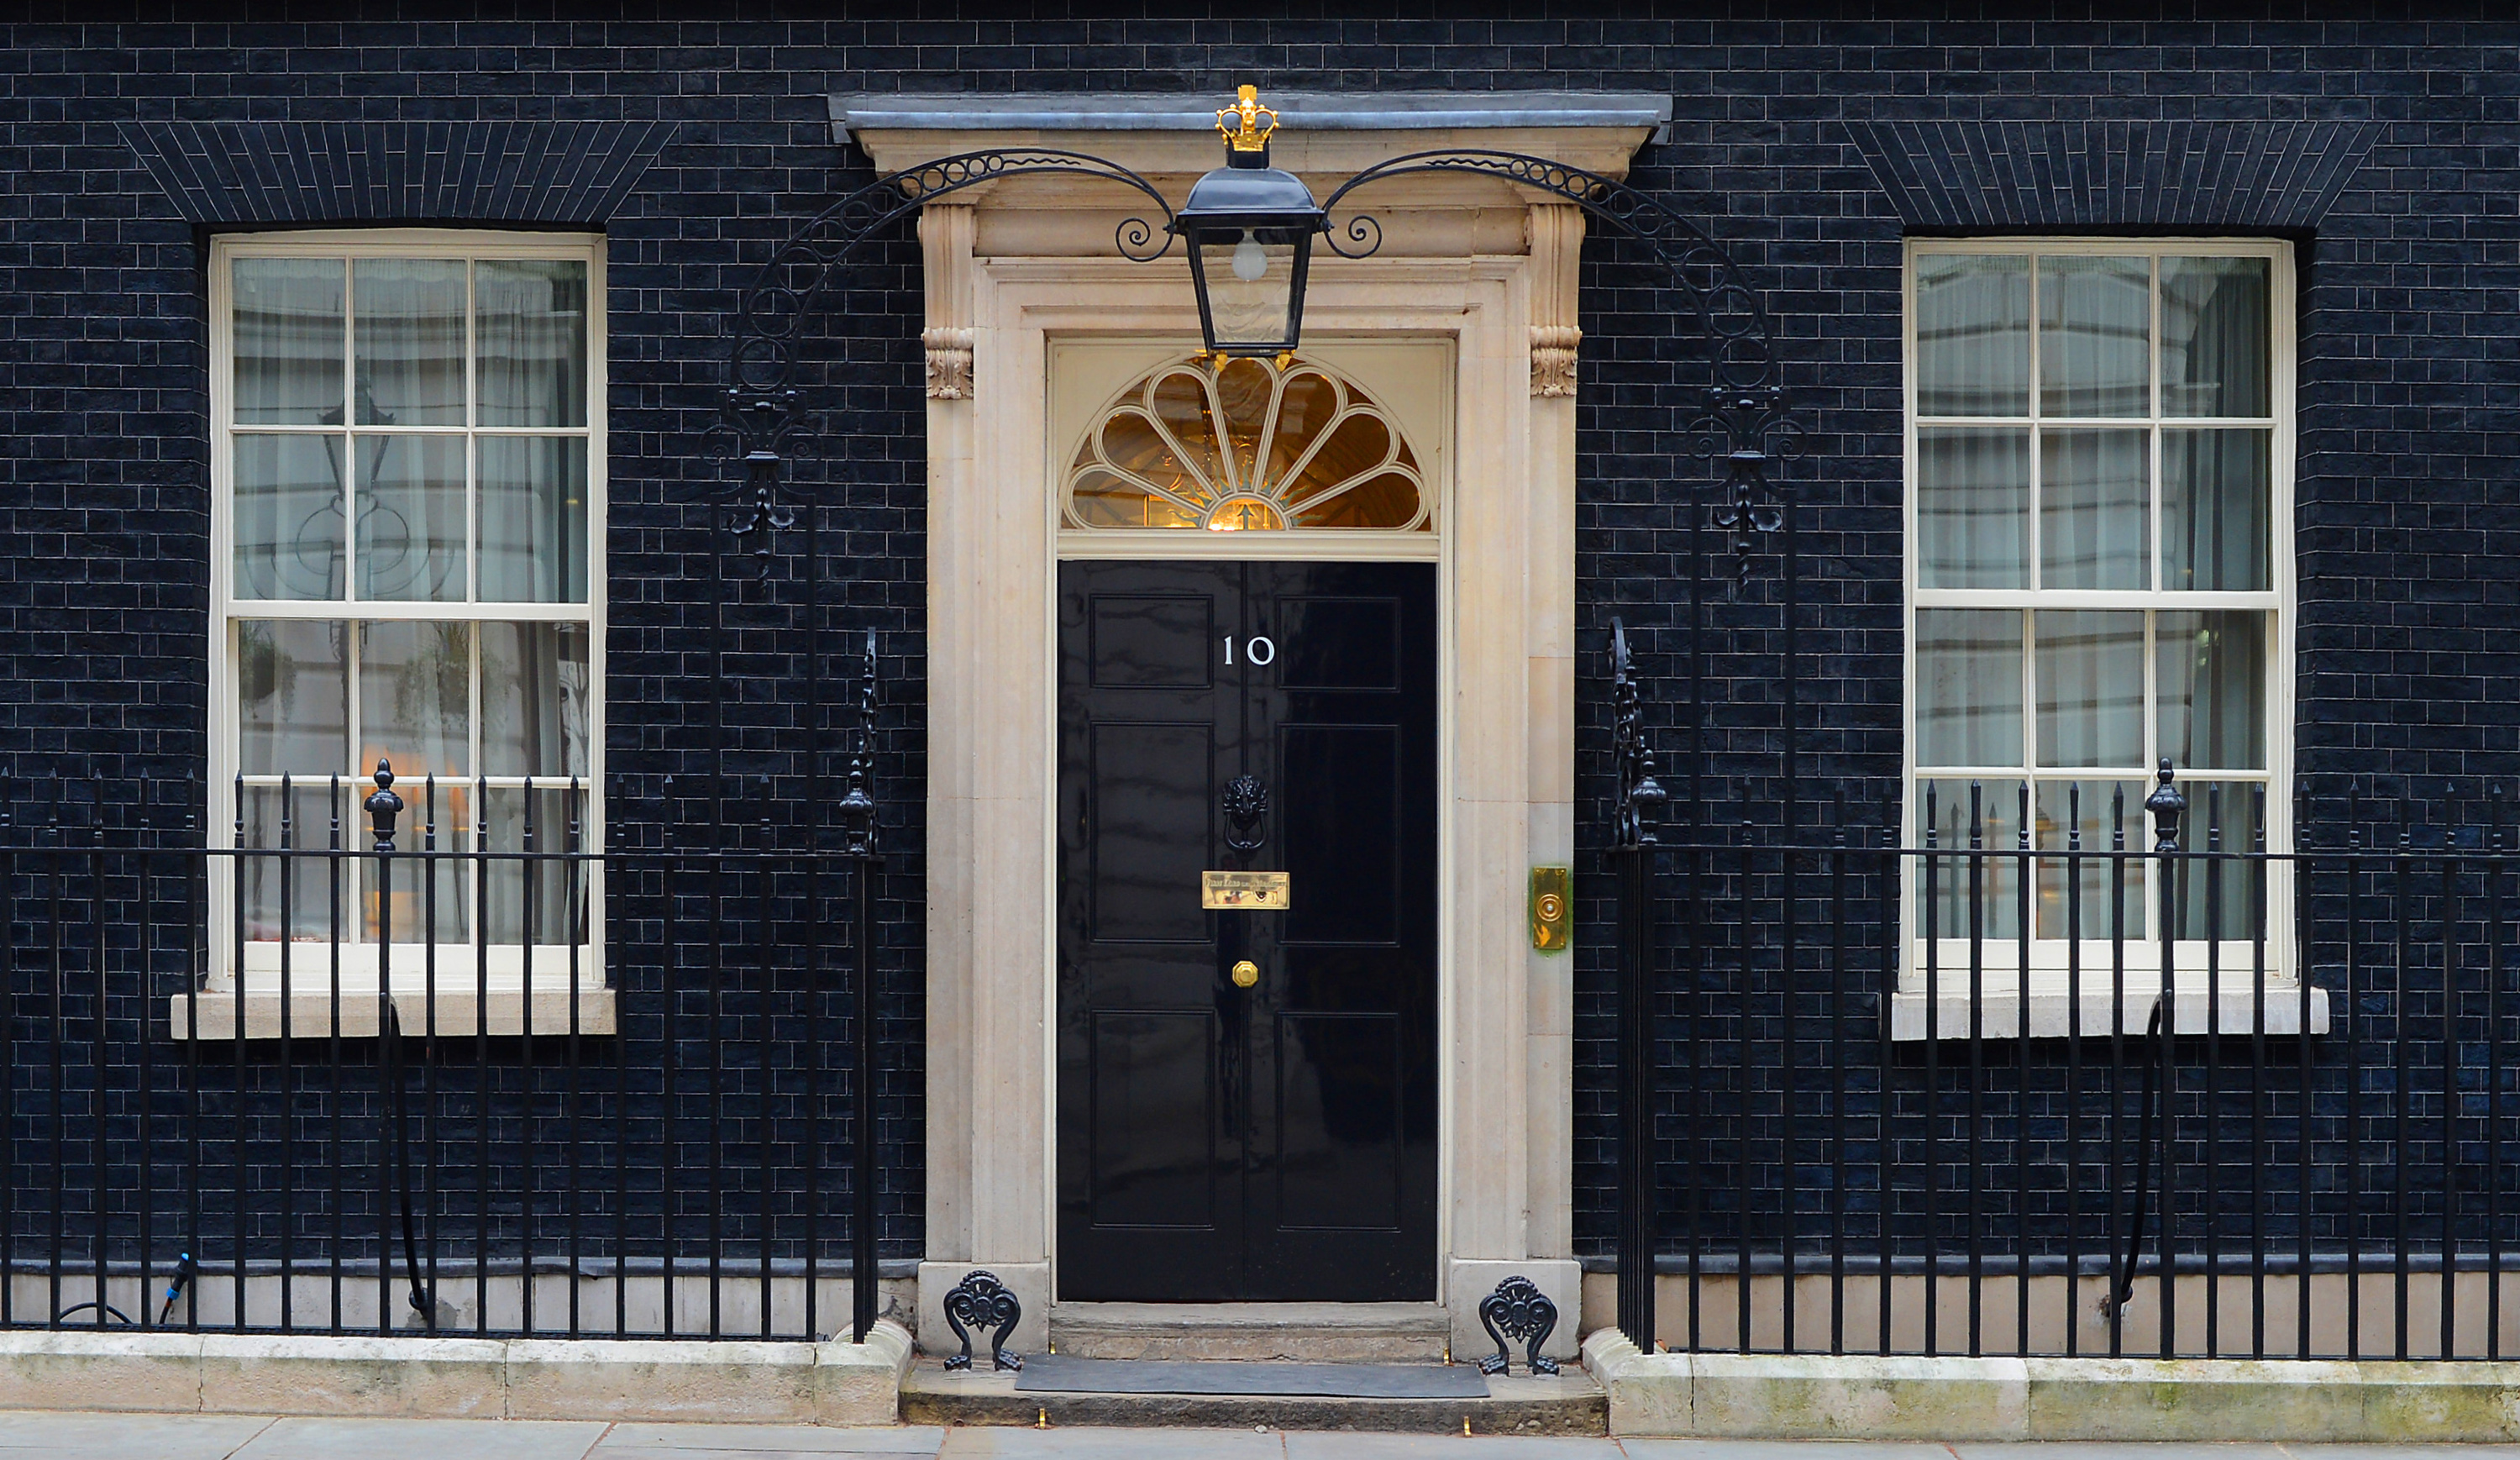 British ISIS Fighters Release Video Threatening Heathrow And Downing Street 10 Downing Street. MOD 45155532